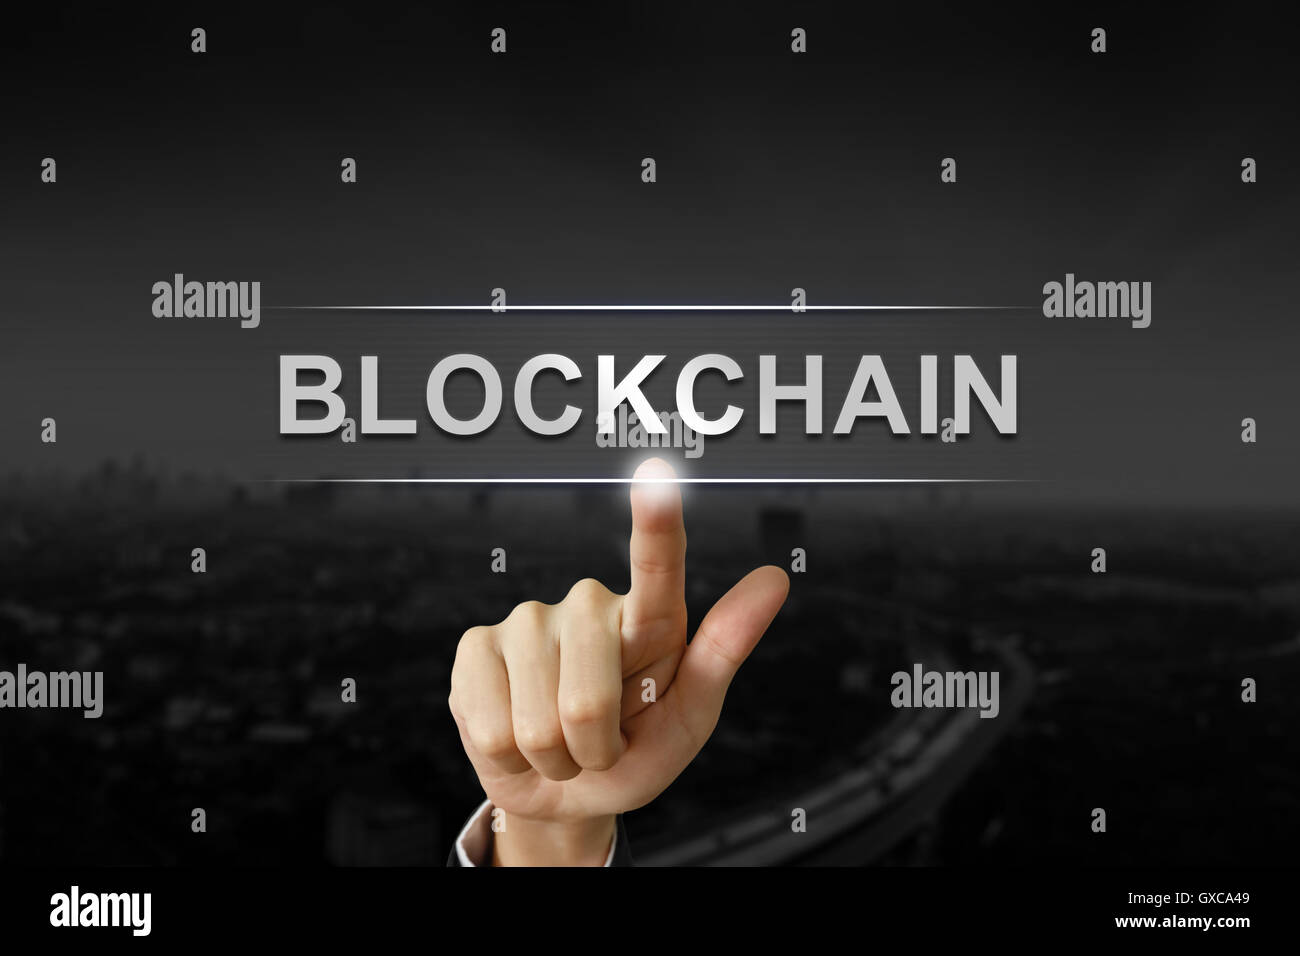 business hand clicking blockchain button on black blurred background - Stock Image